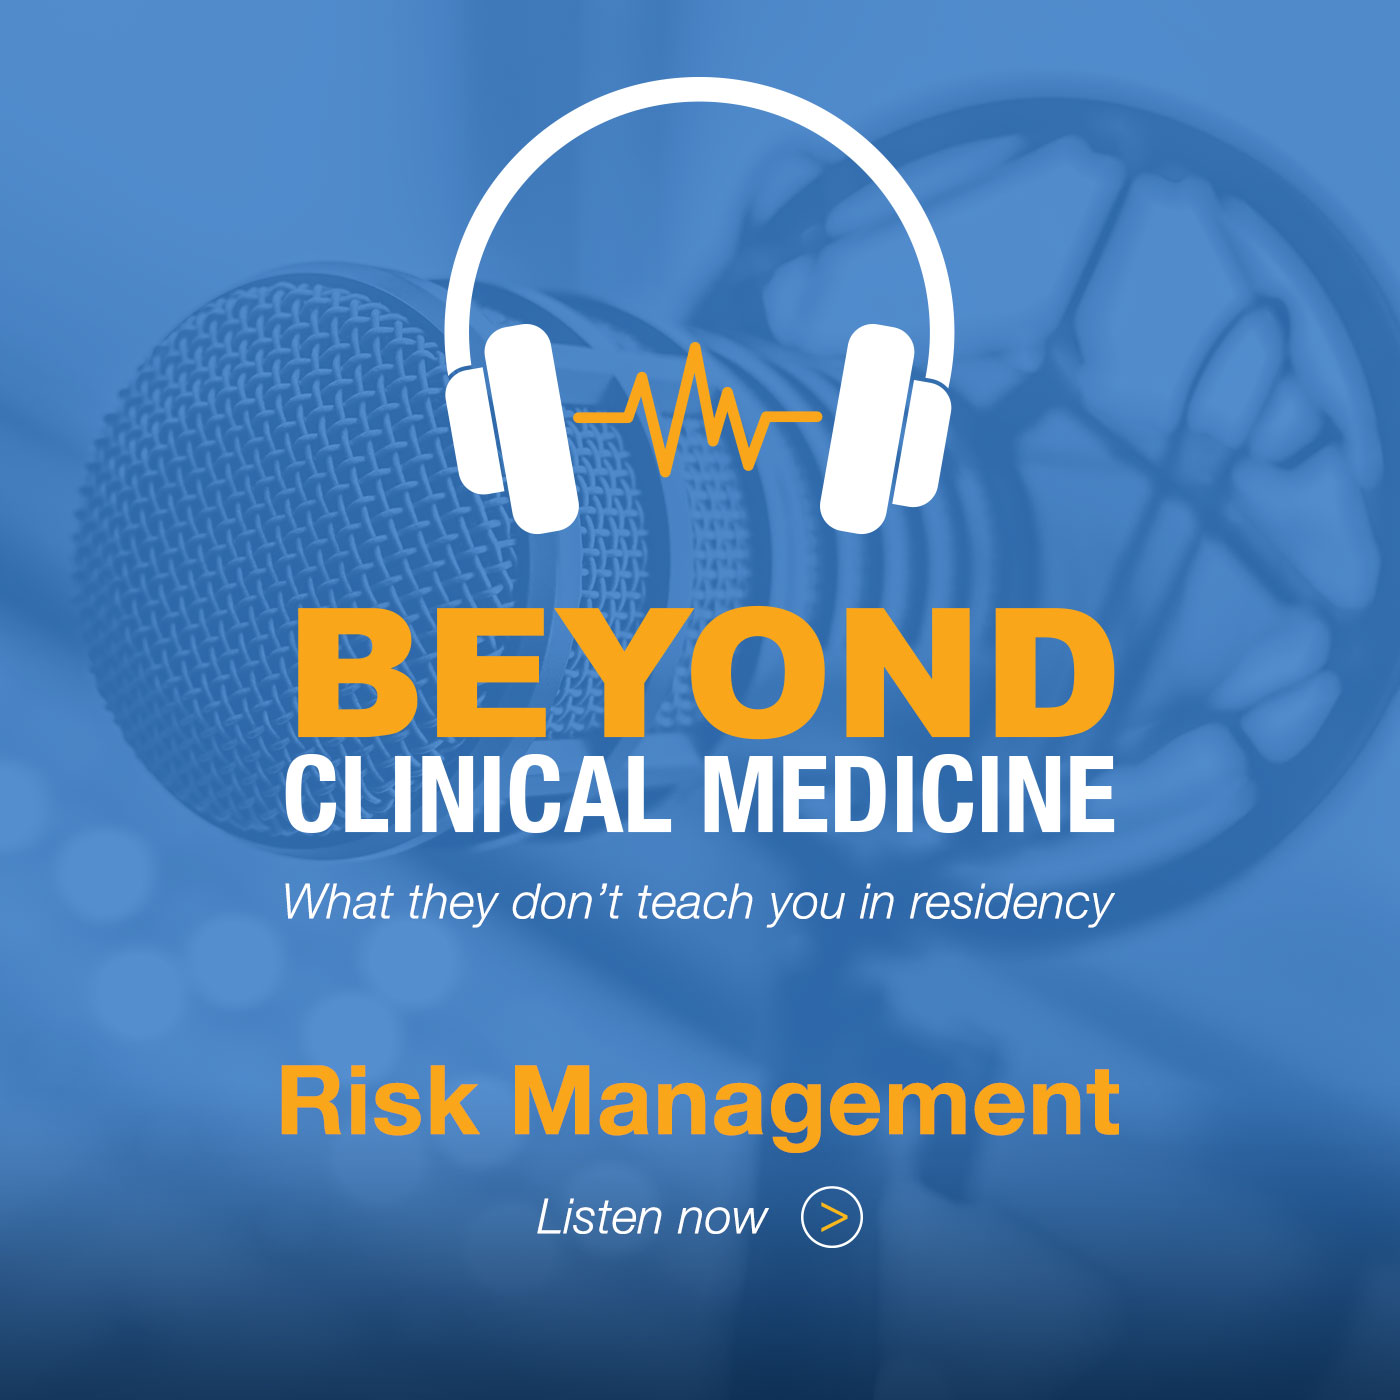 Beyond Clinical Medicine Episode 1: Risk Management